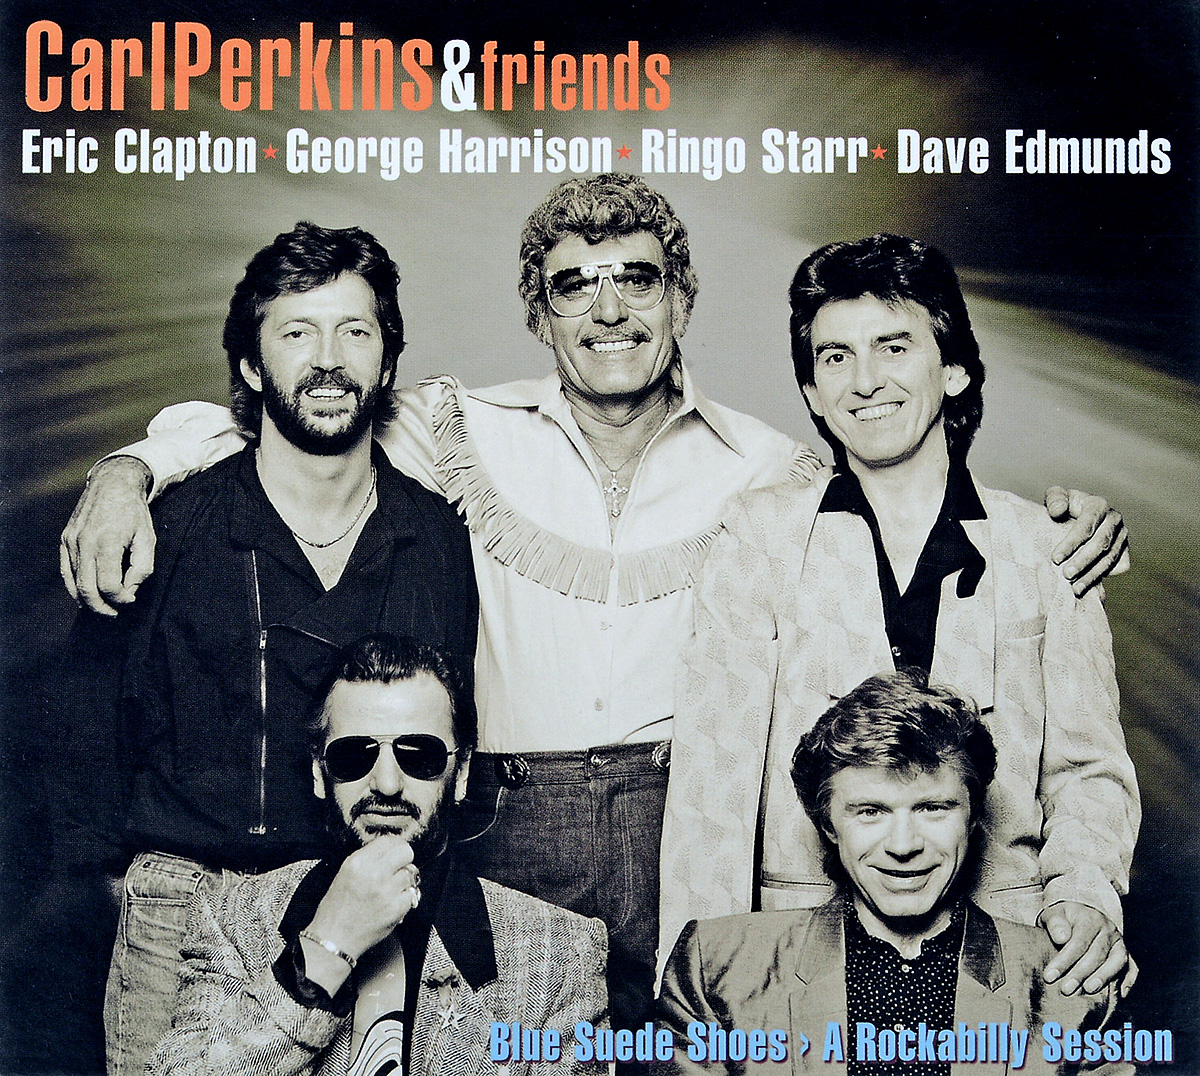 Carl Perkins & Friends: Blue Suede Shoes: A Rockabilly Session: 30th Anniversary Edition (CD + DVD) klaus h carl shoes